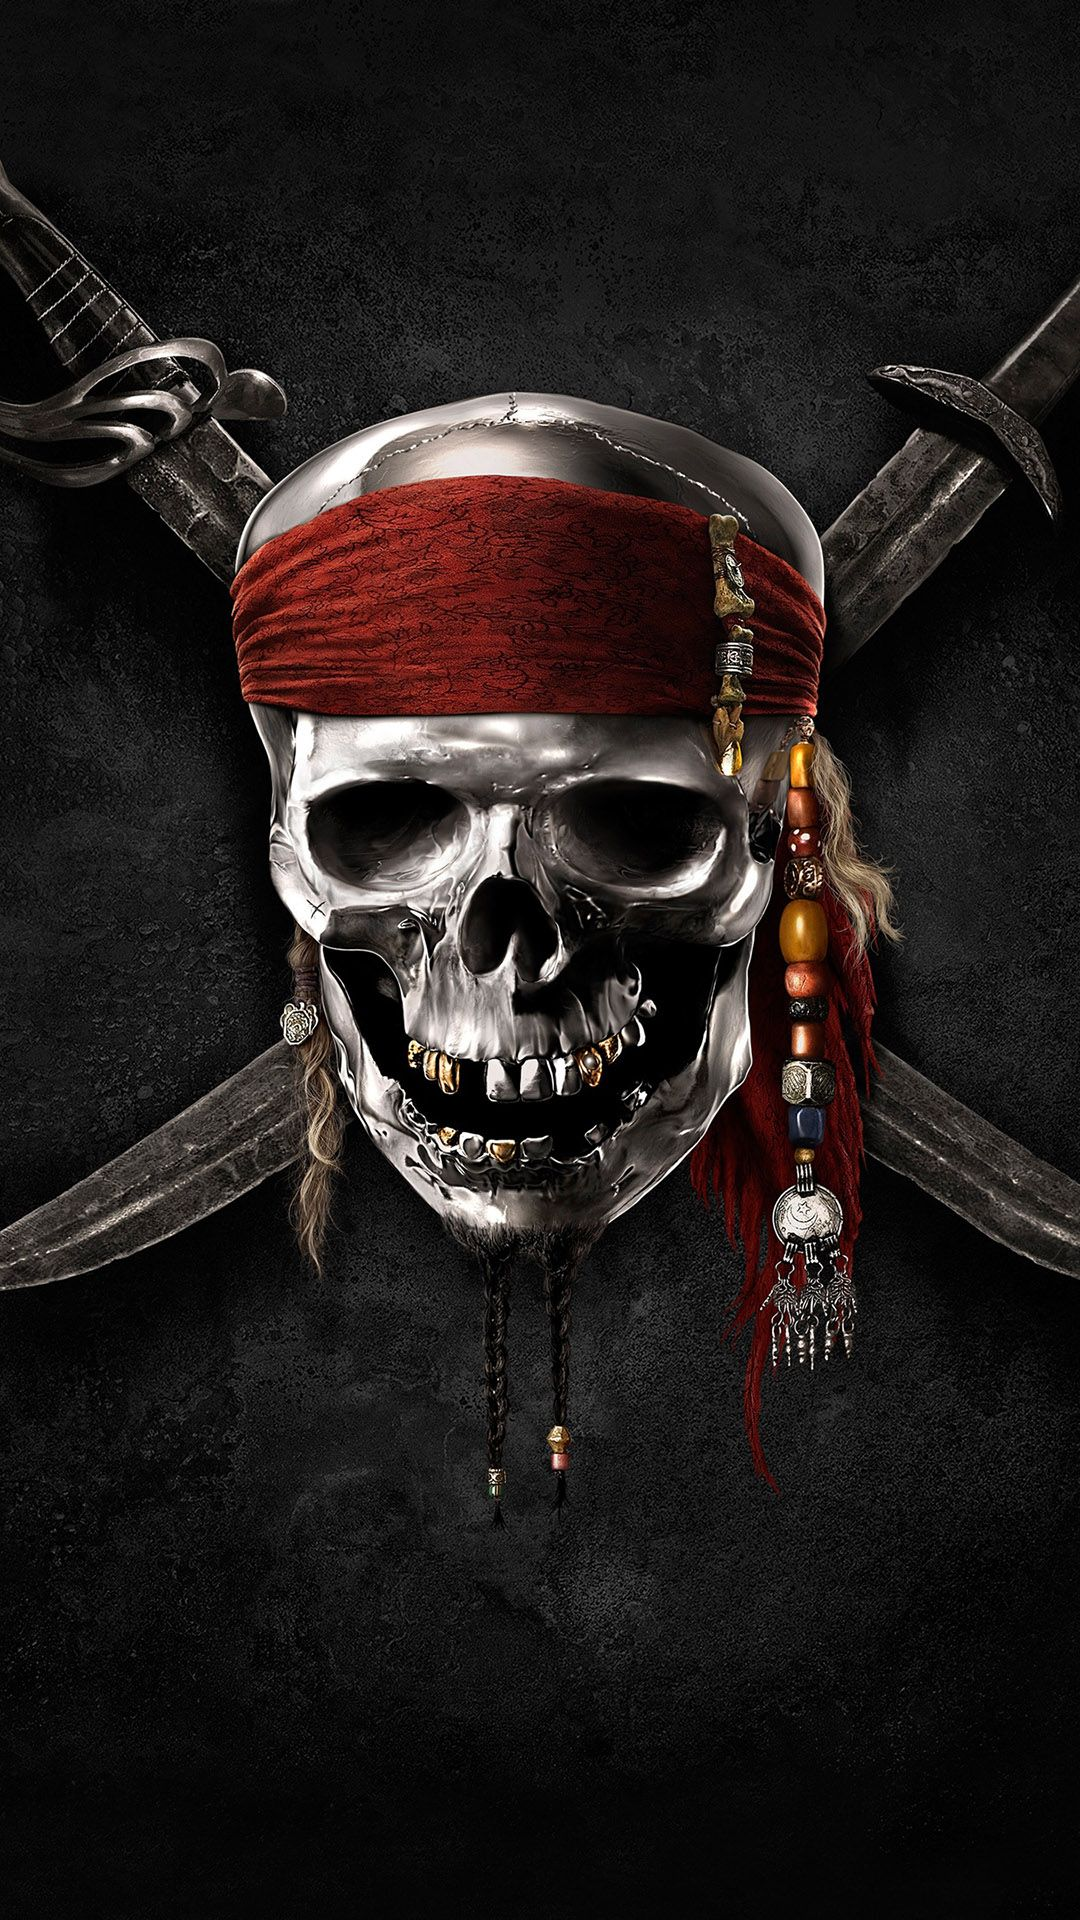 Image For Mobile Black Pirates Hd Android Wallpaper For Mobile Pirates Of The Caribbean Pirates Pirate Skull